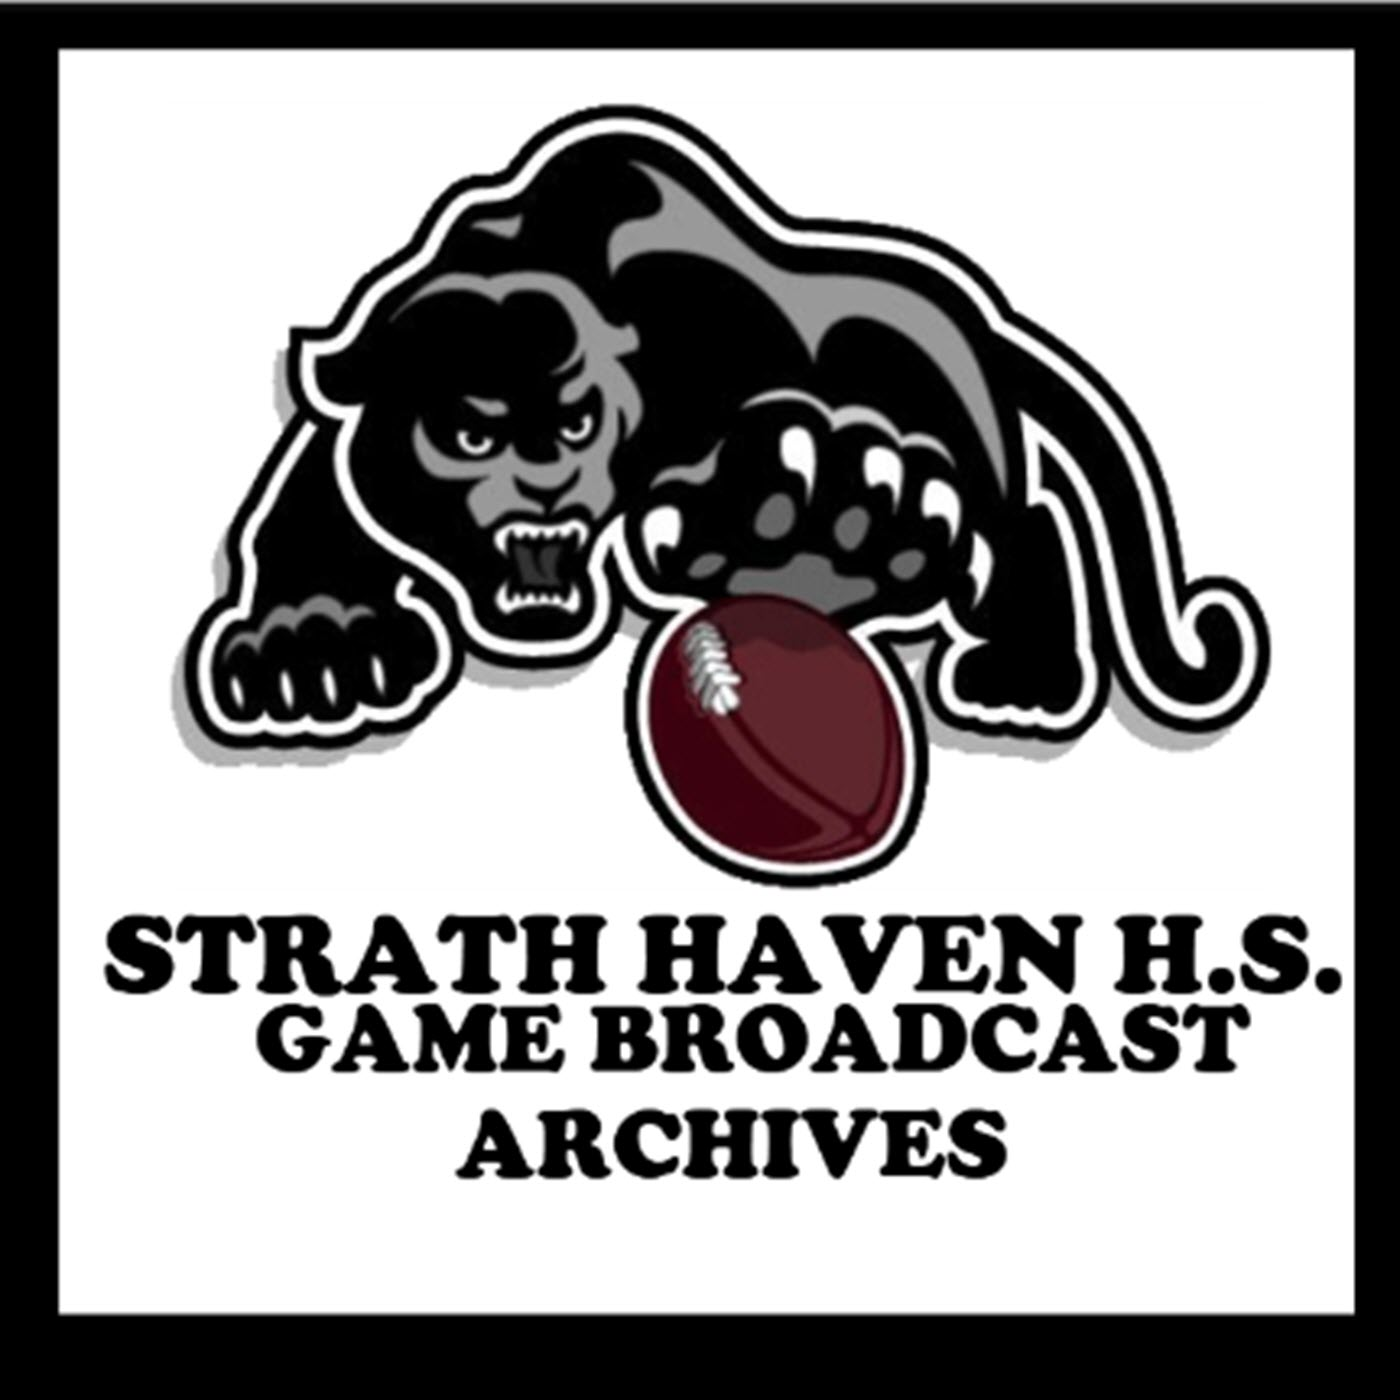 Strath Haven Football Game Broadcasts